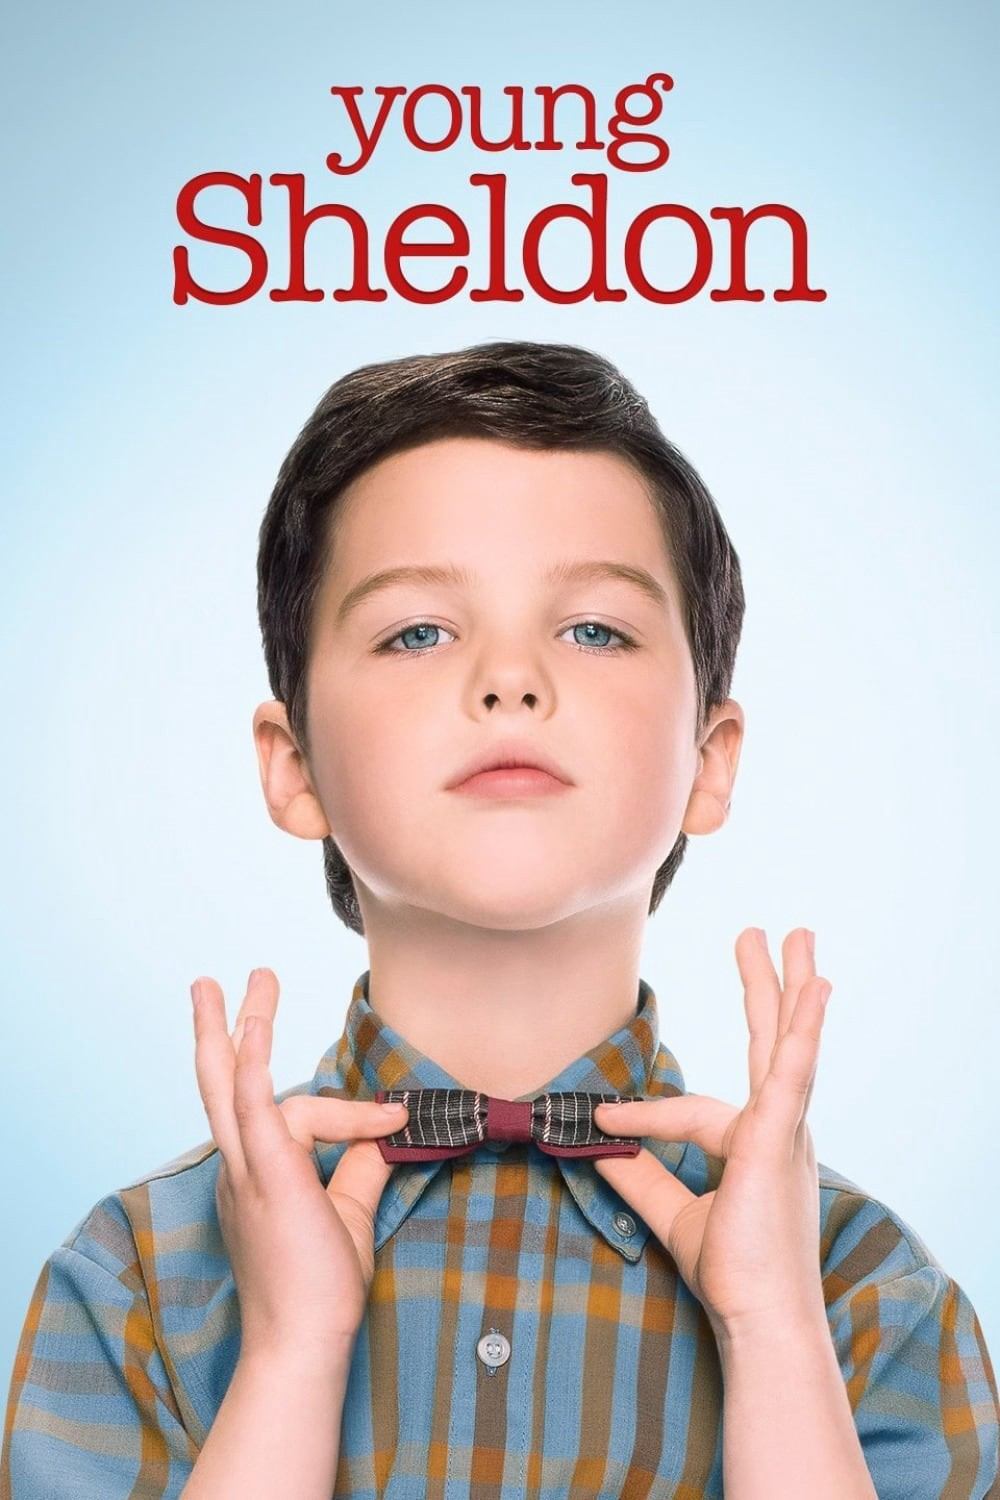 [( Young Sheldon )] Season 4 (Episode 6)) — Official CBS | Young Sheldon 4x06